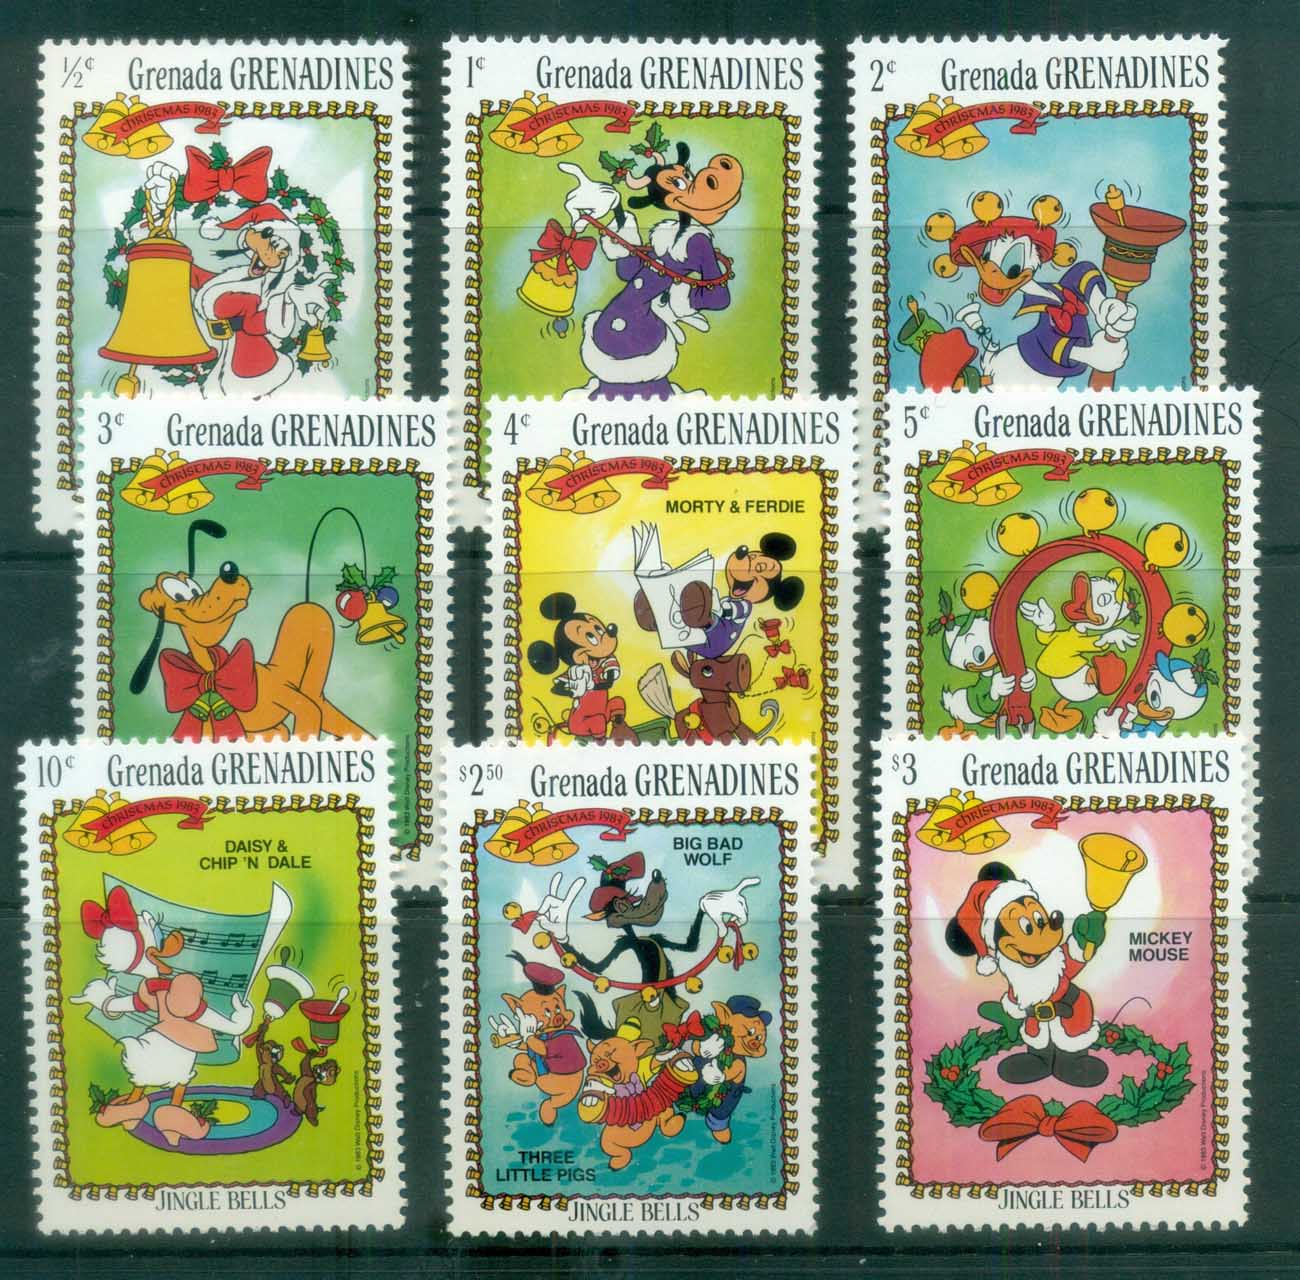 Grenada Grenadines 1983 Disney, Xmas, Jingle Bells MUH lot77484